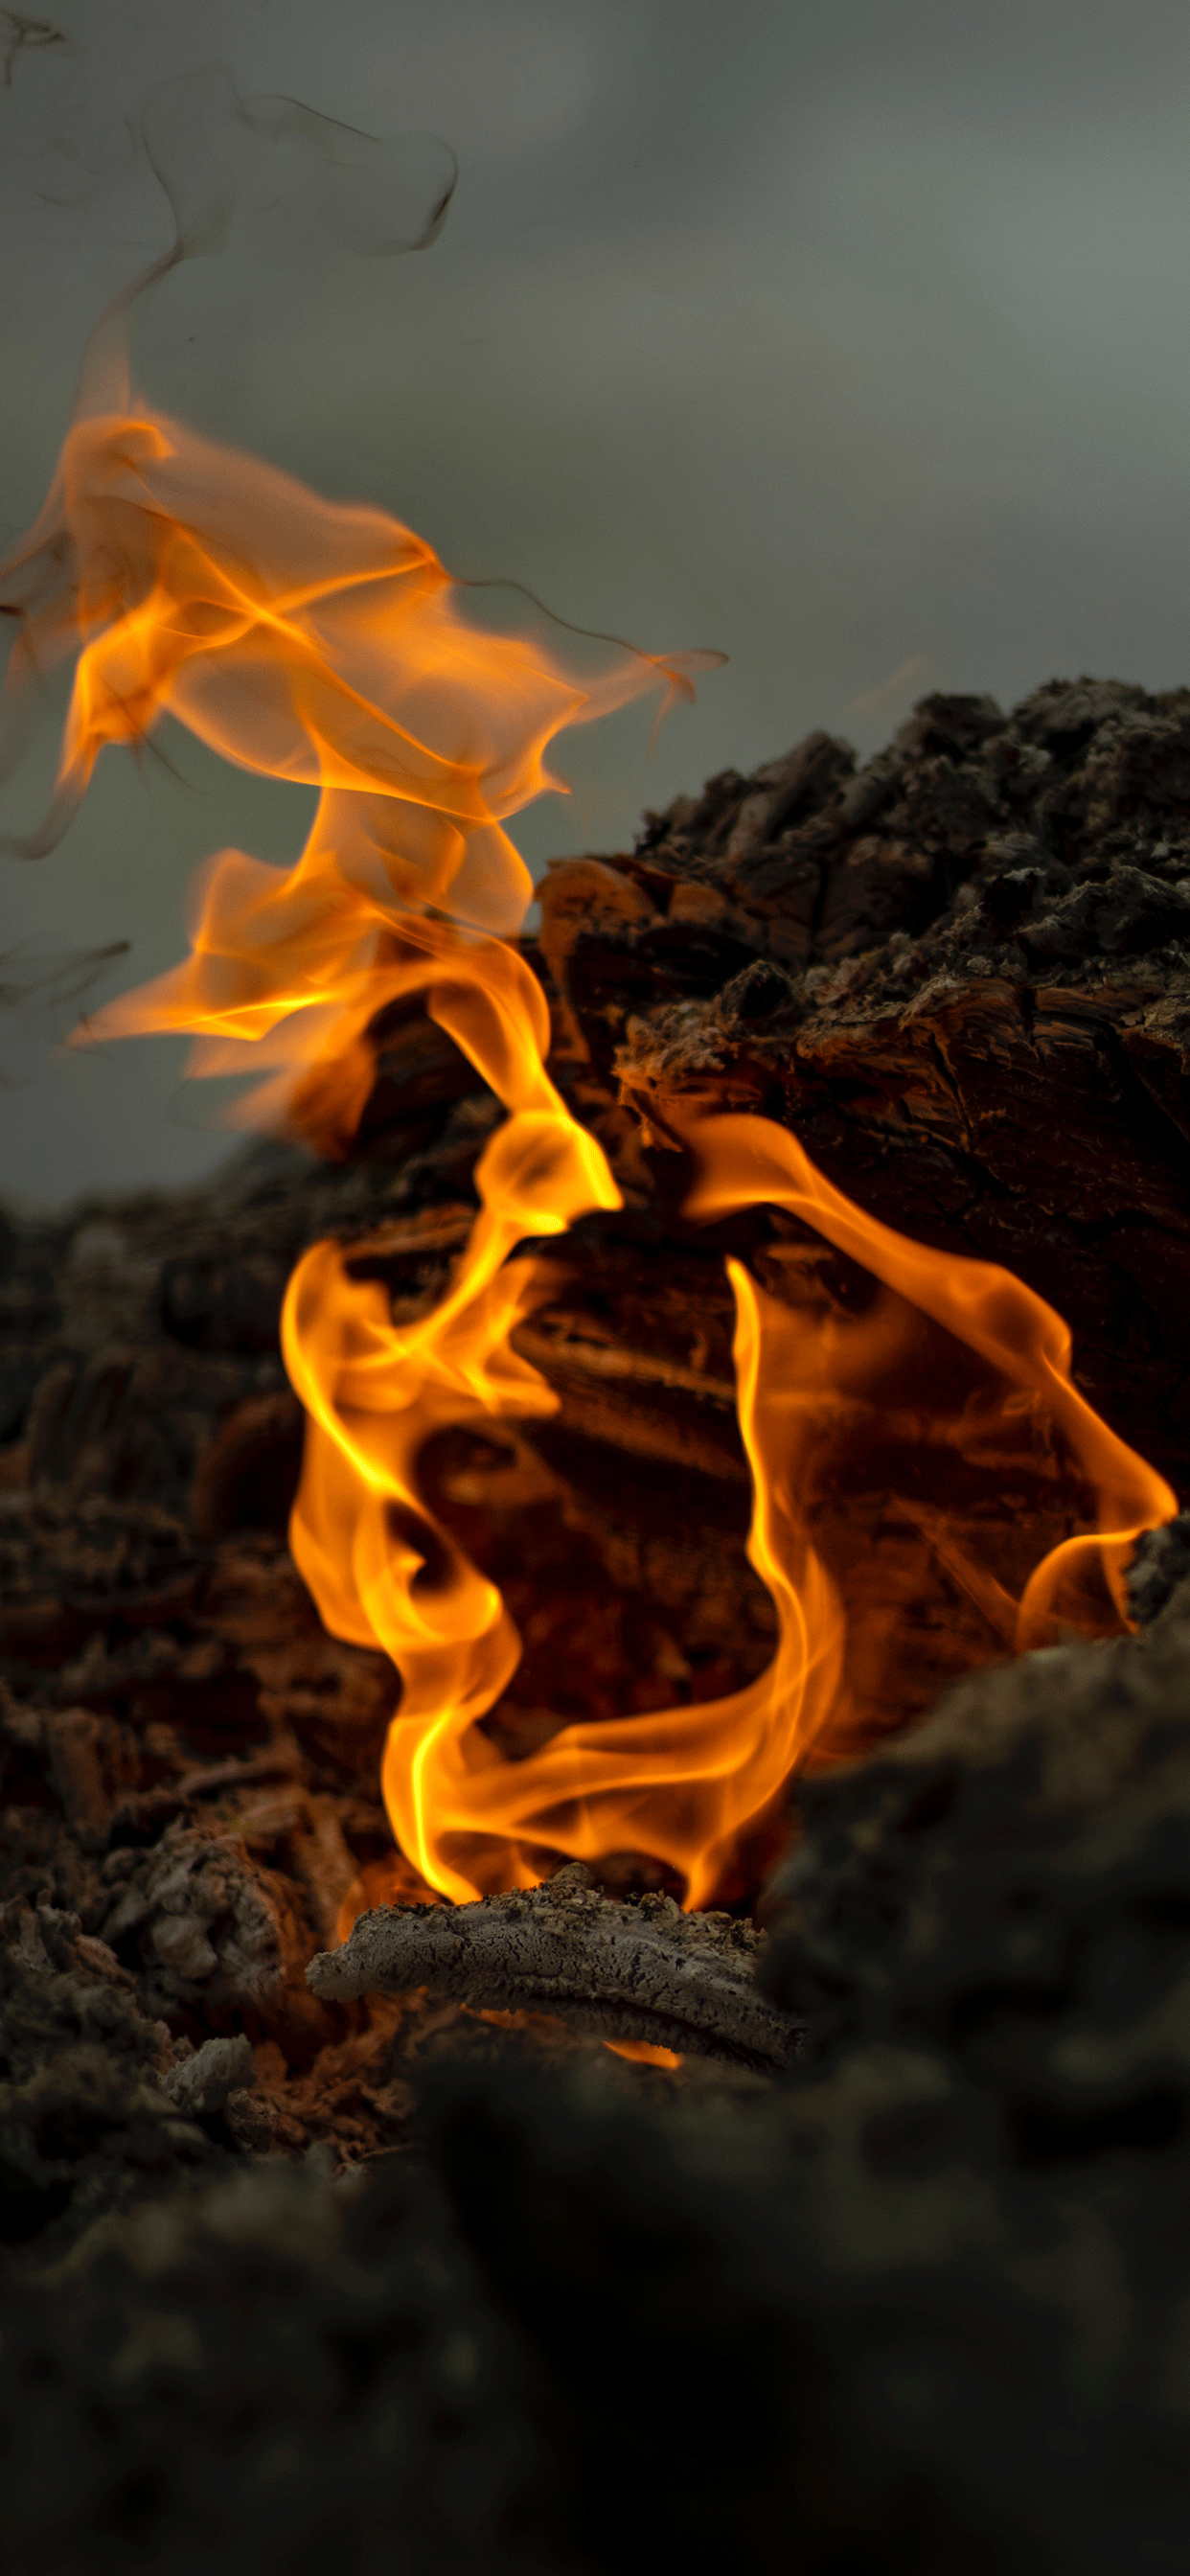 iPhone wallpapers fire flame Fonds d'écran iPhone du 11/07/2019